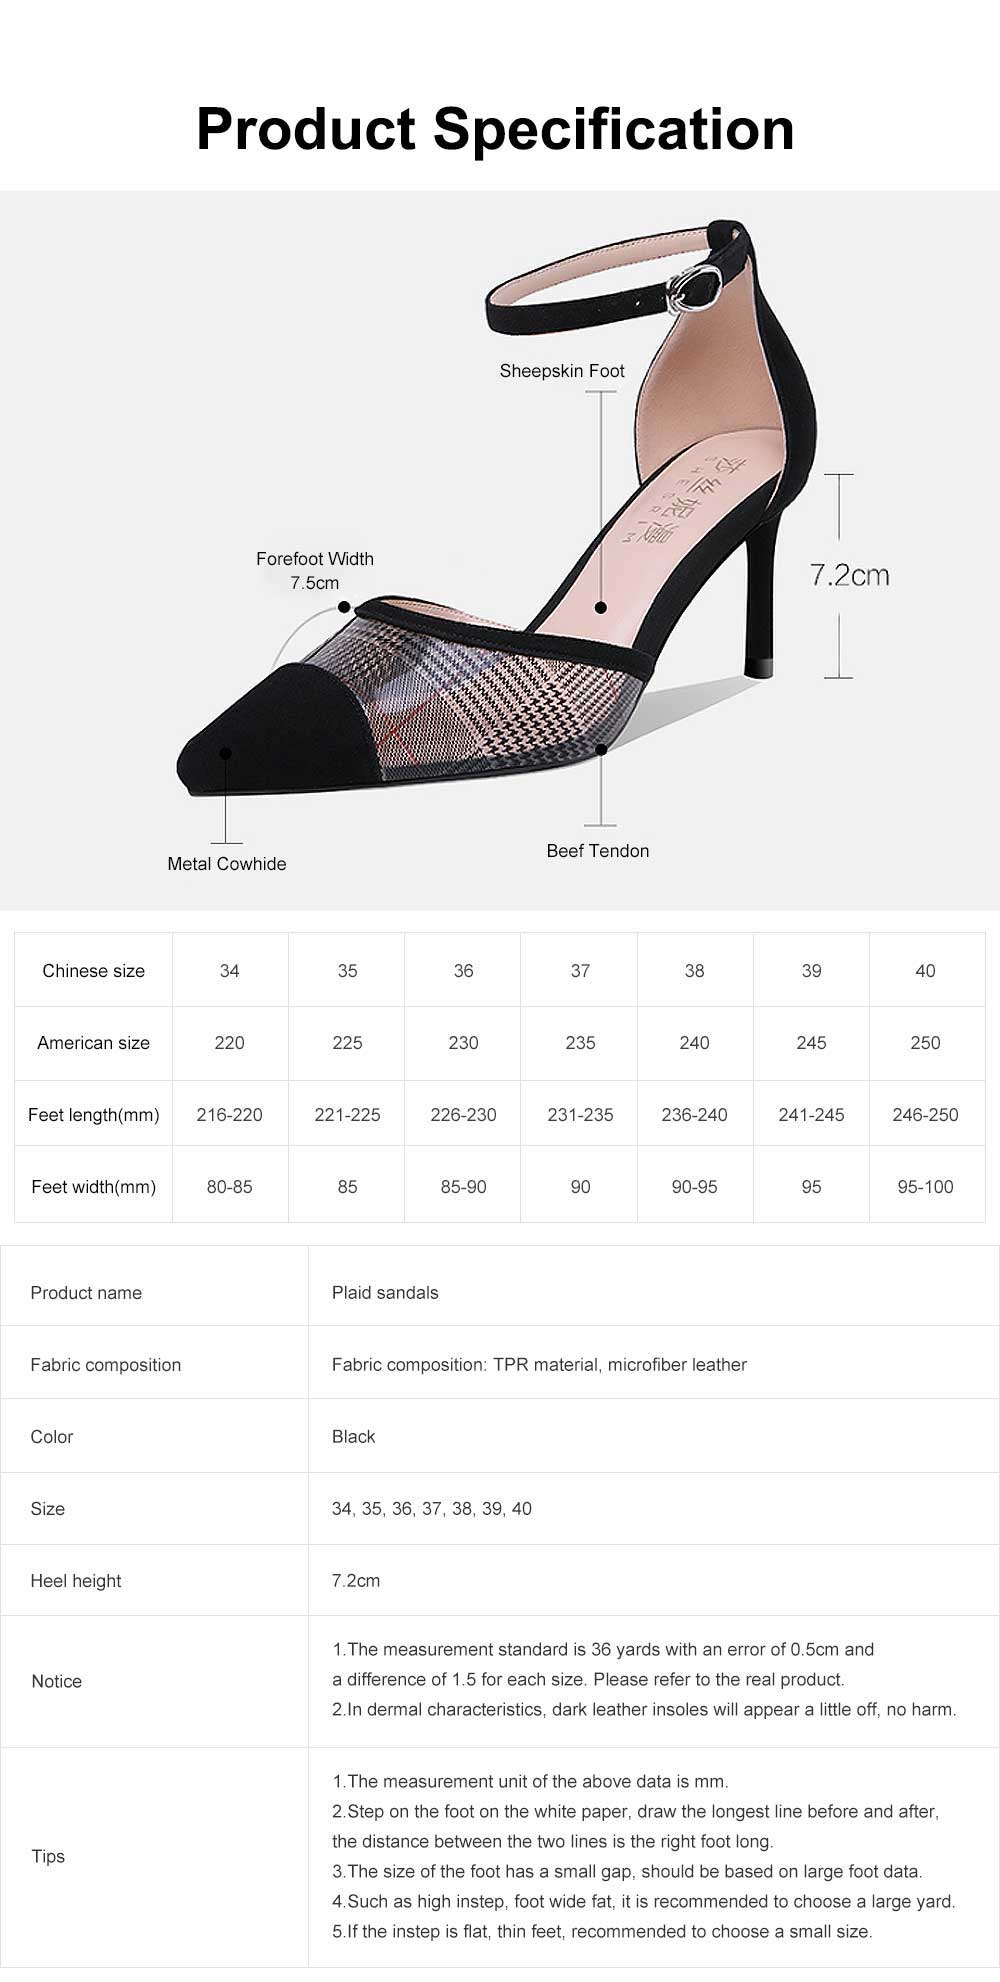 Plaid Sandals for Women, TPR Shoe Sole Sheepskin High Heels, Modified Leg Line Multi-sizes High-heeled Shoes Summer 2019 6